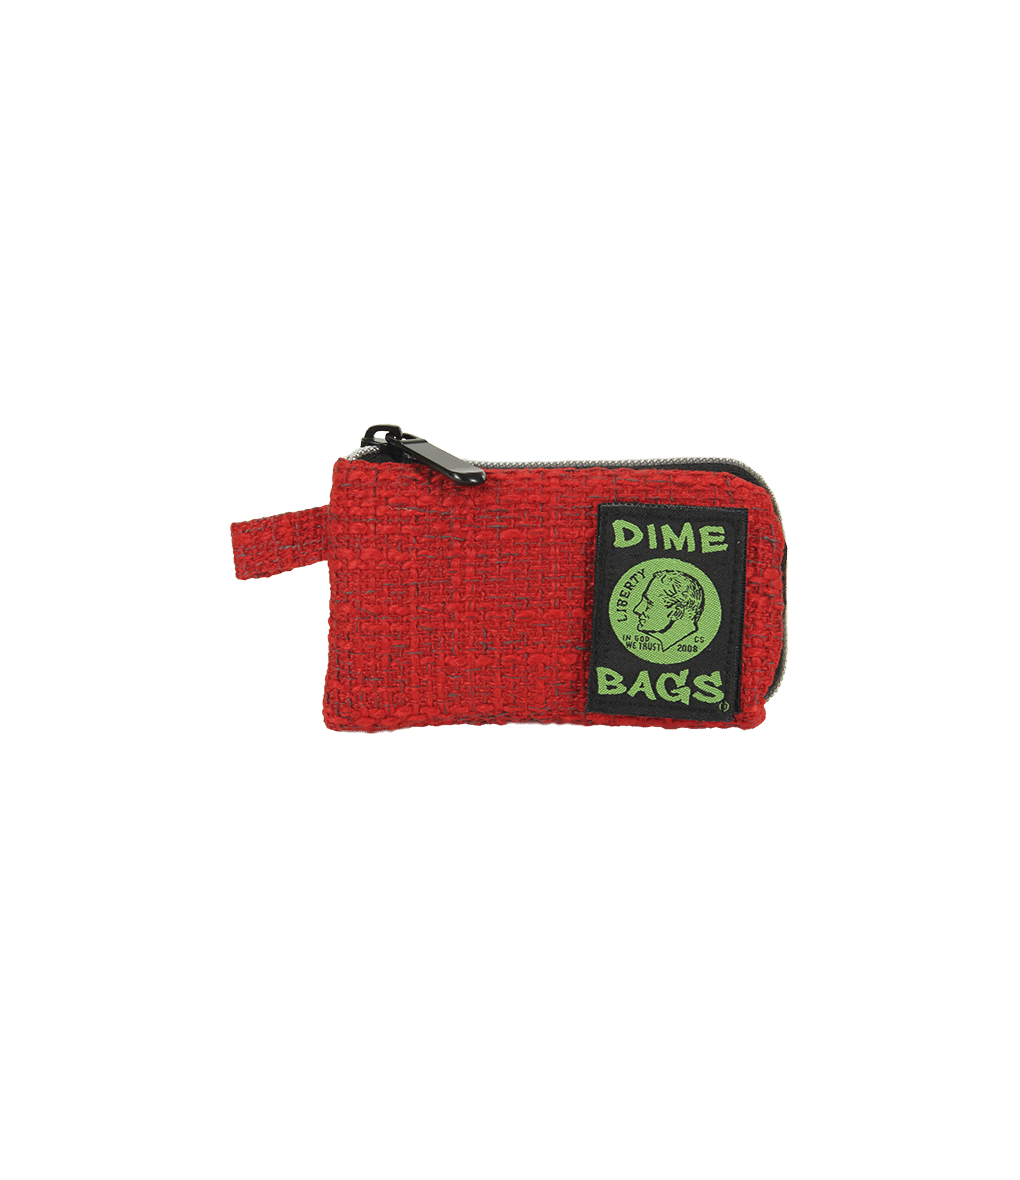 "Dime Bag - 5"" Pouch - Red"